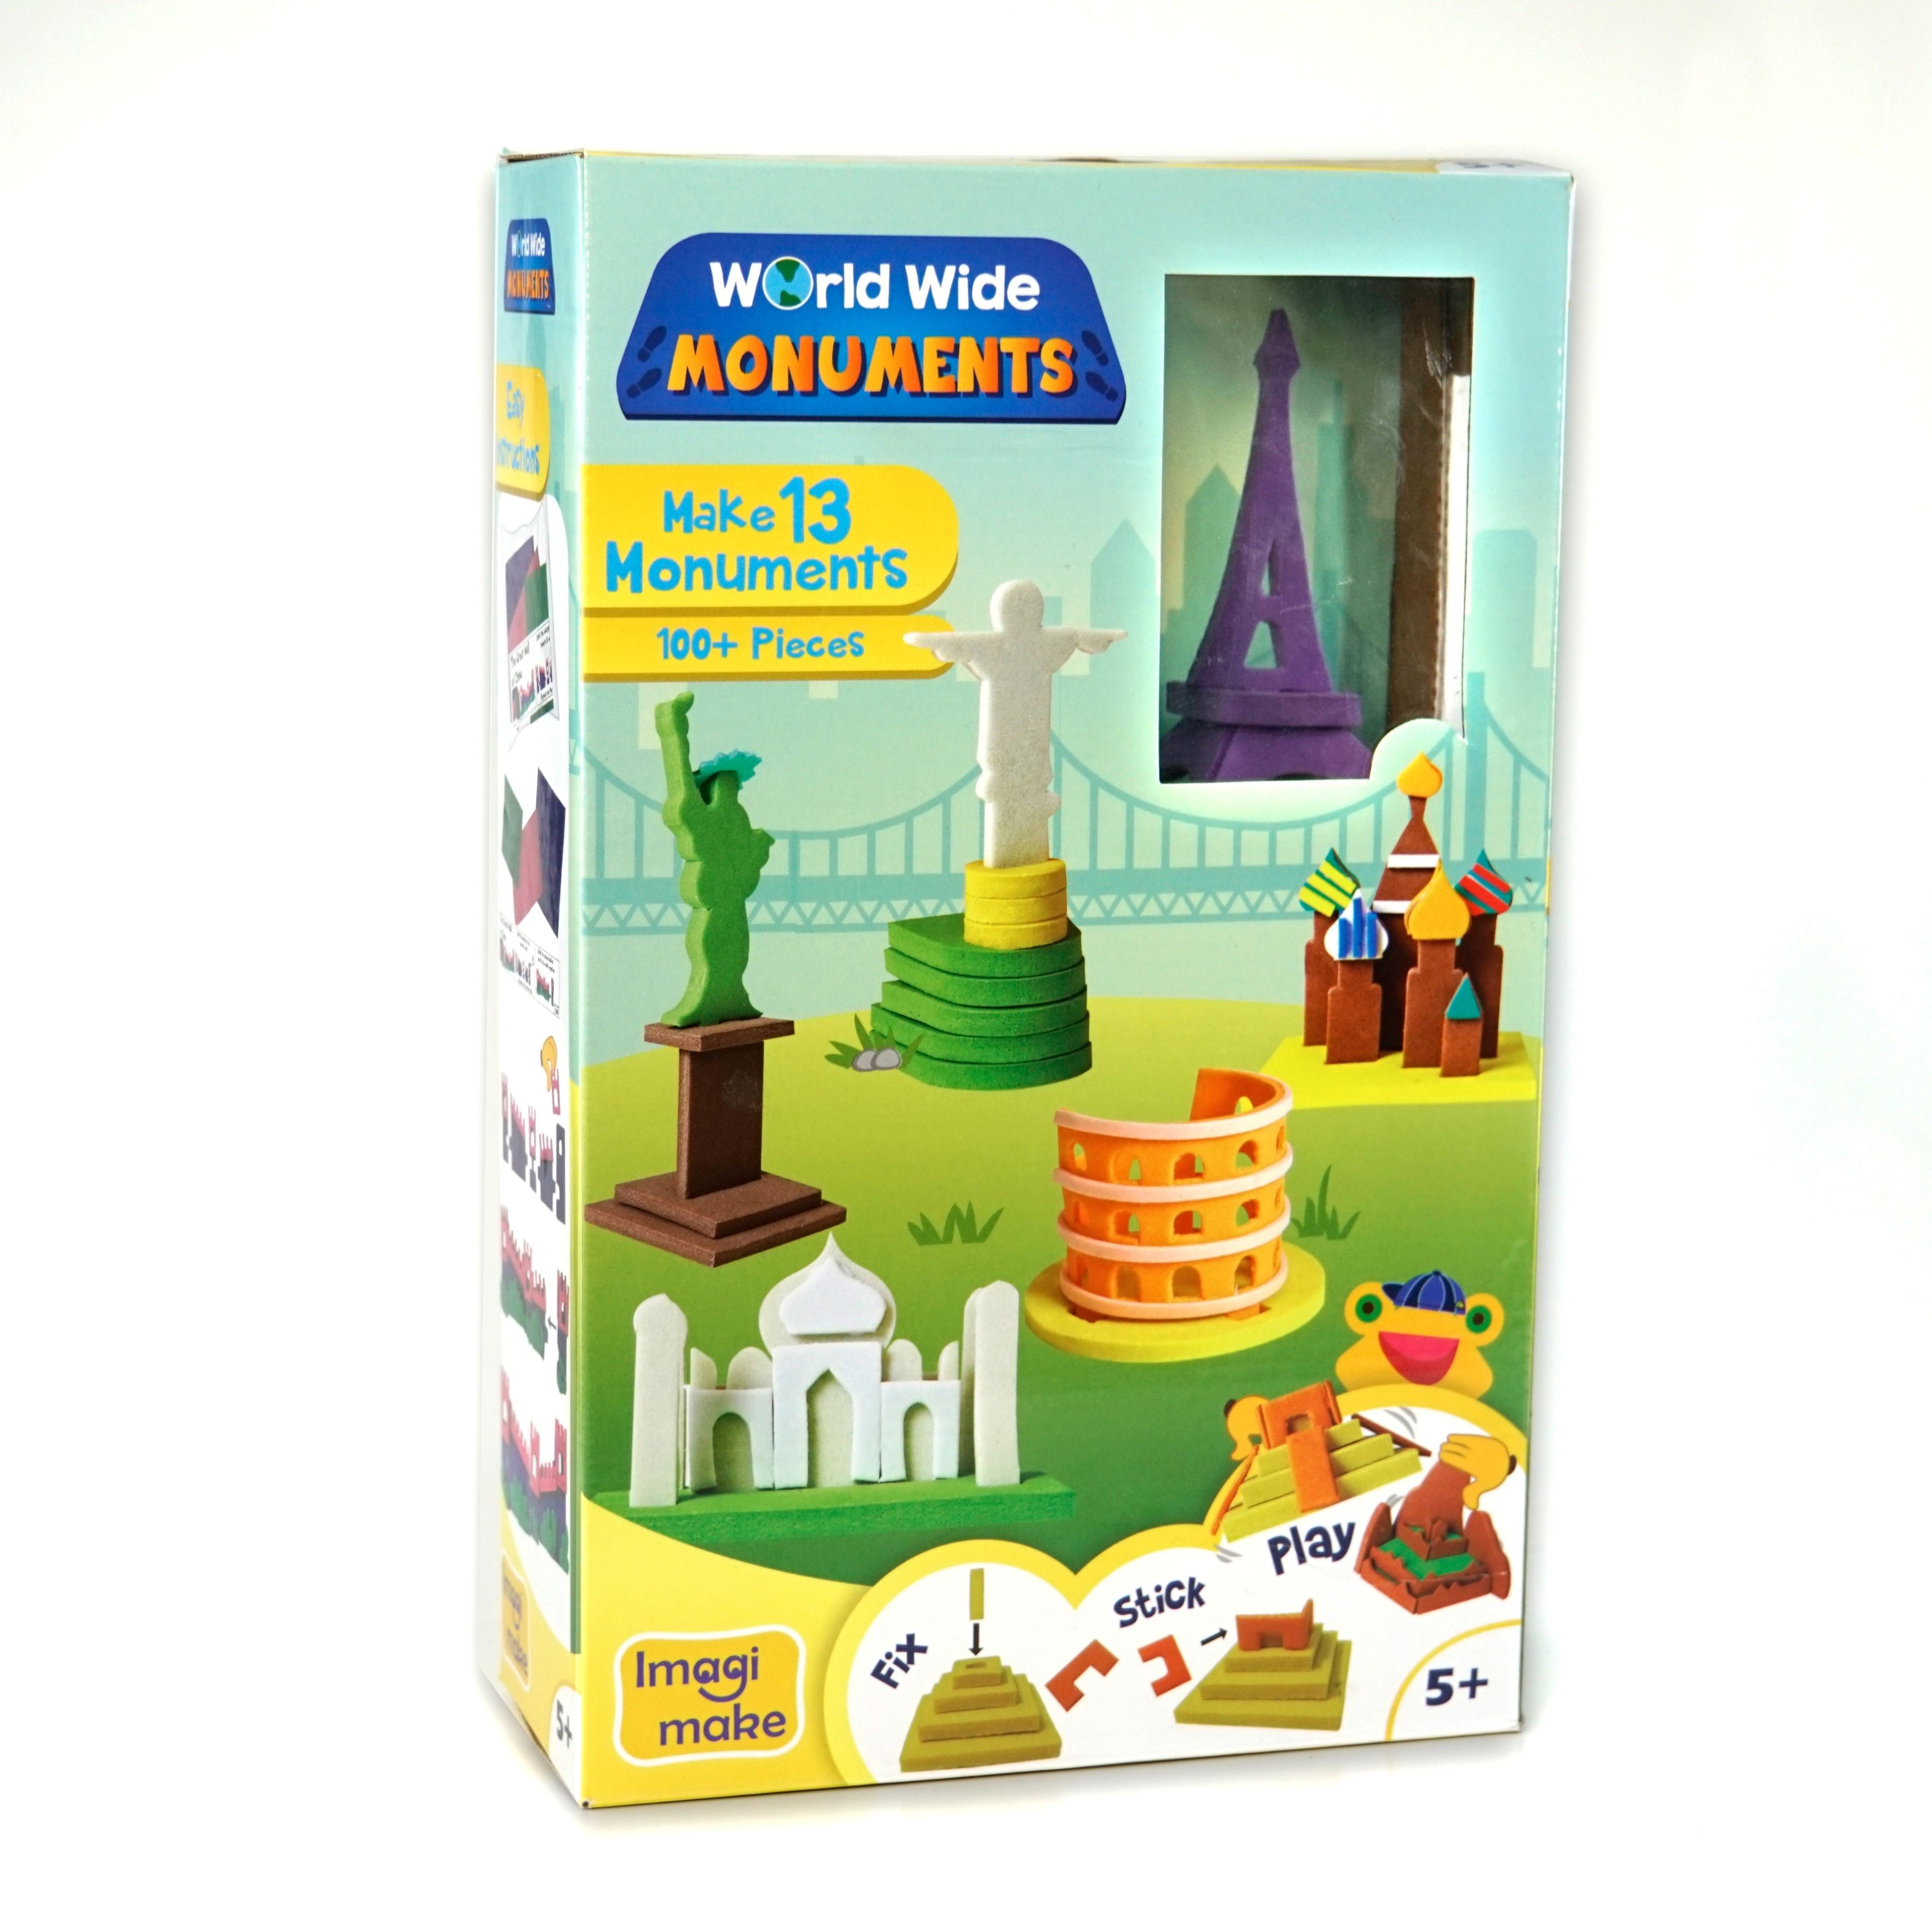 Worldwide Monuments How To Make Toys Model Making Monument